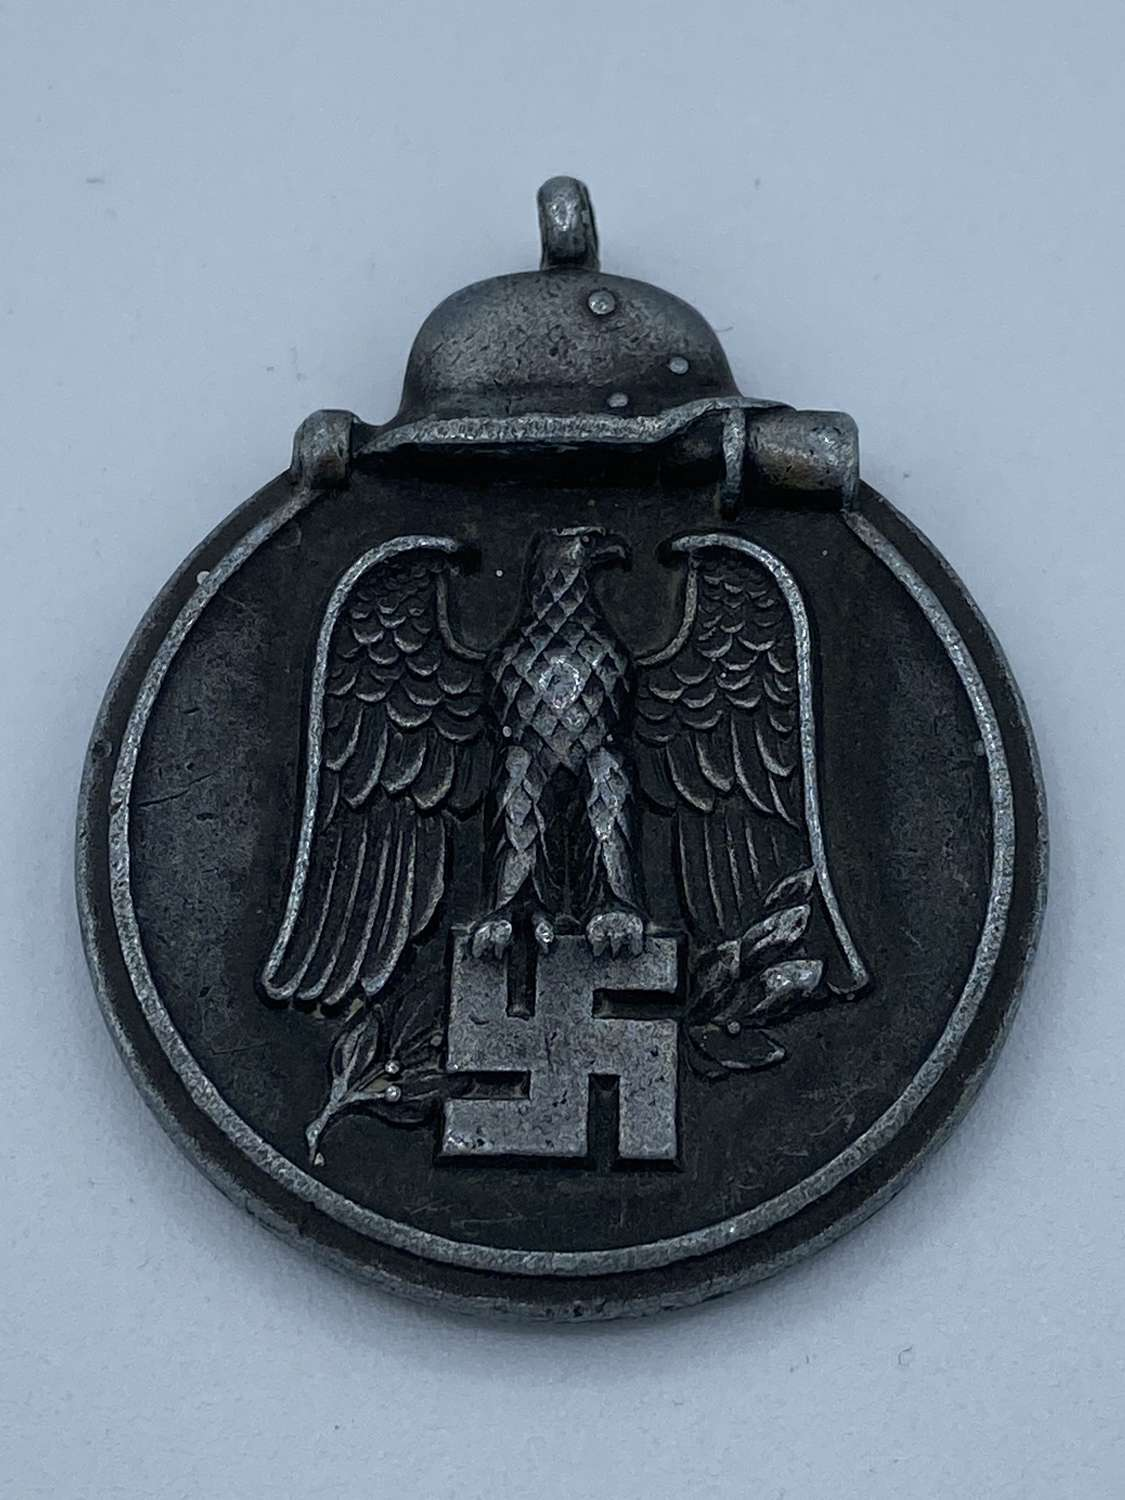 WW2 German Eastern Front Stalingrad Medal 1941-1942